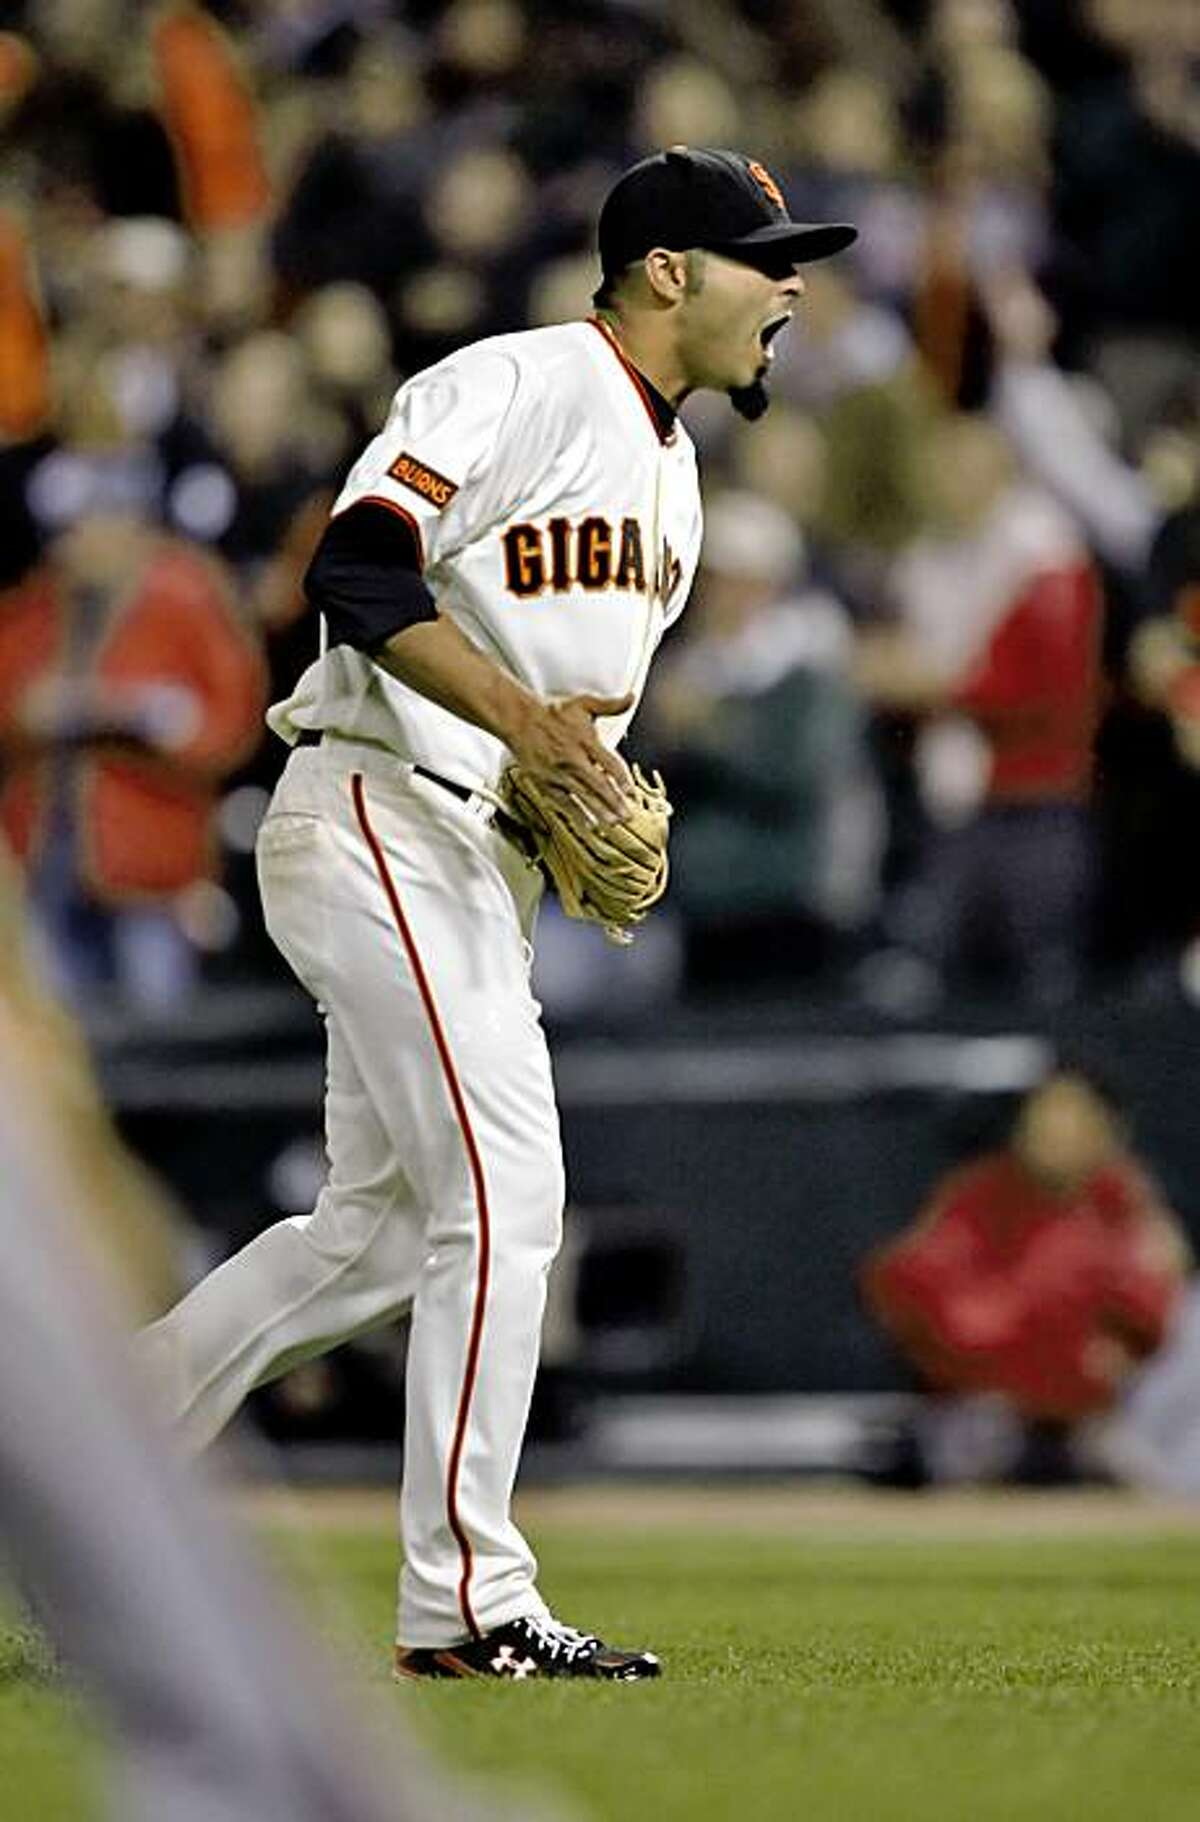 Sergio Romo reacts after closing the game against the Arizona Diamondbacks. The San Francisco Giants played the Arizona Diamondbacks at AT&T Park in San Francisco, Calif., on Tuesday, August 25, 2009. The Giants won the game, 5-4.